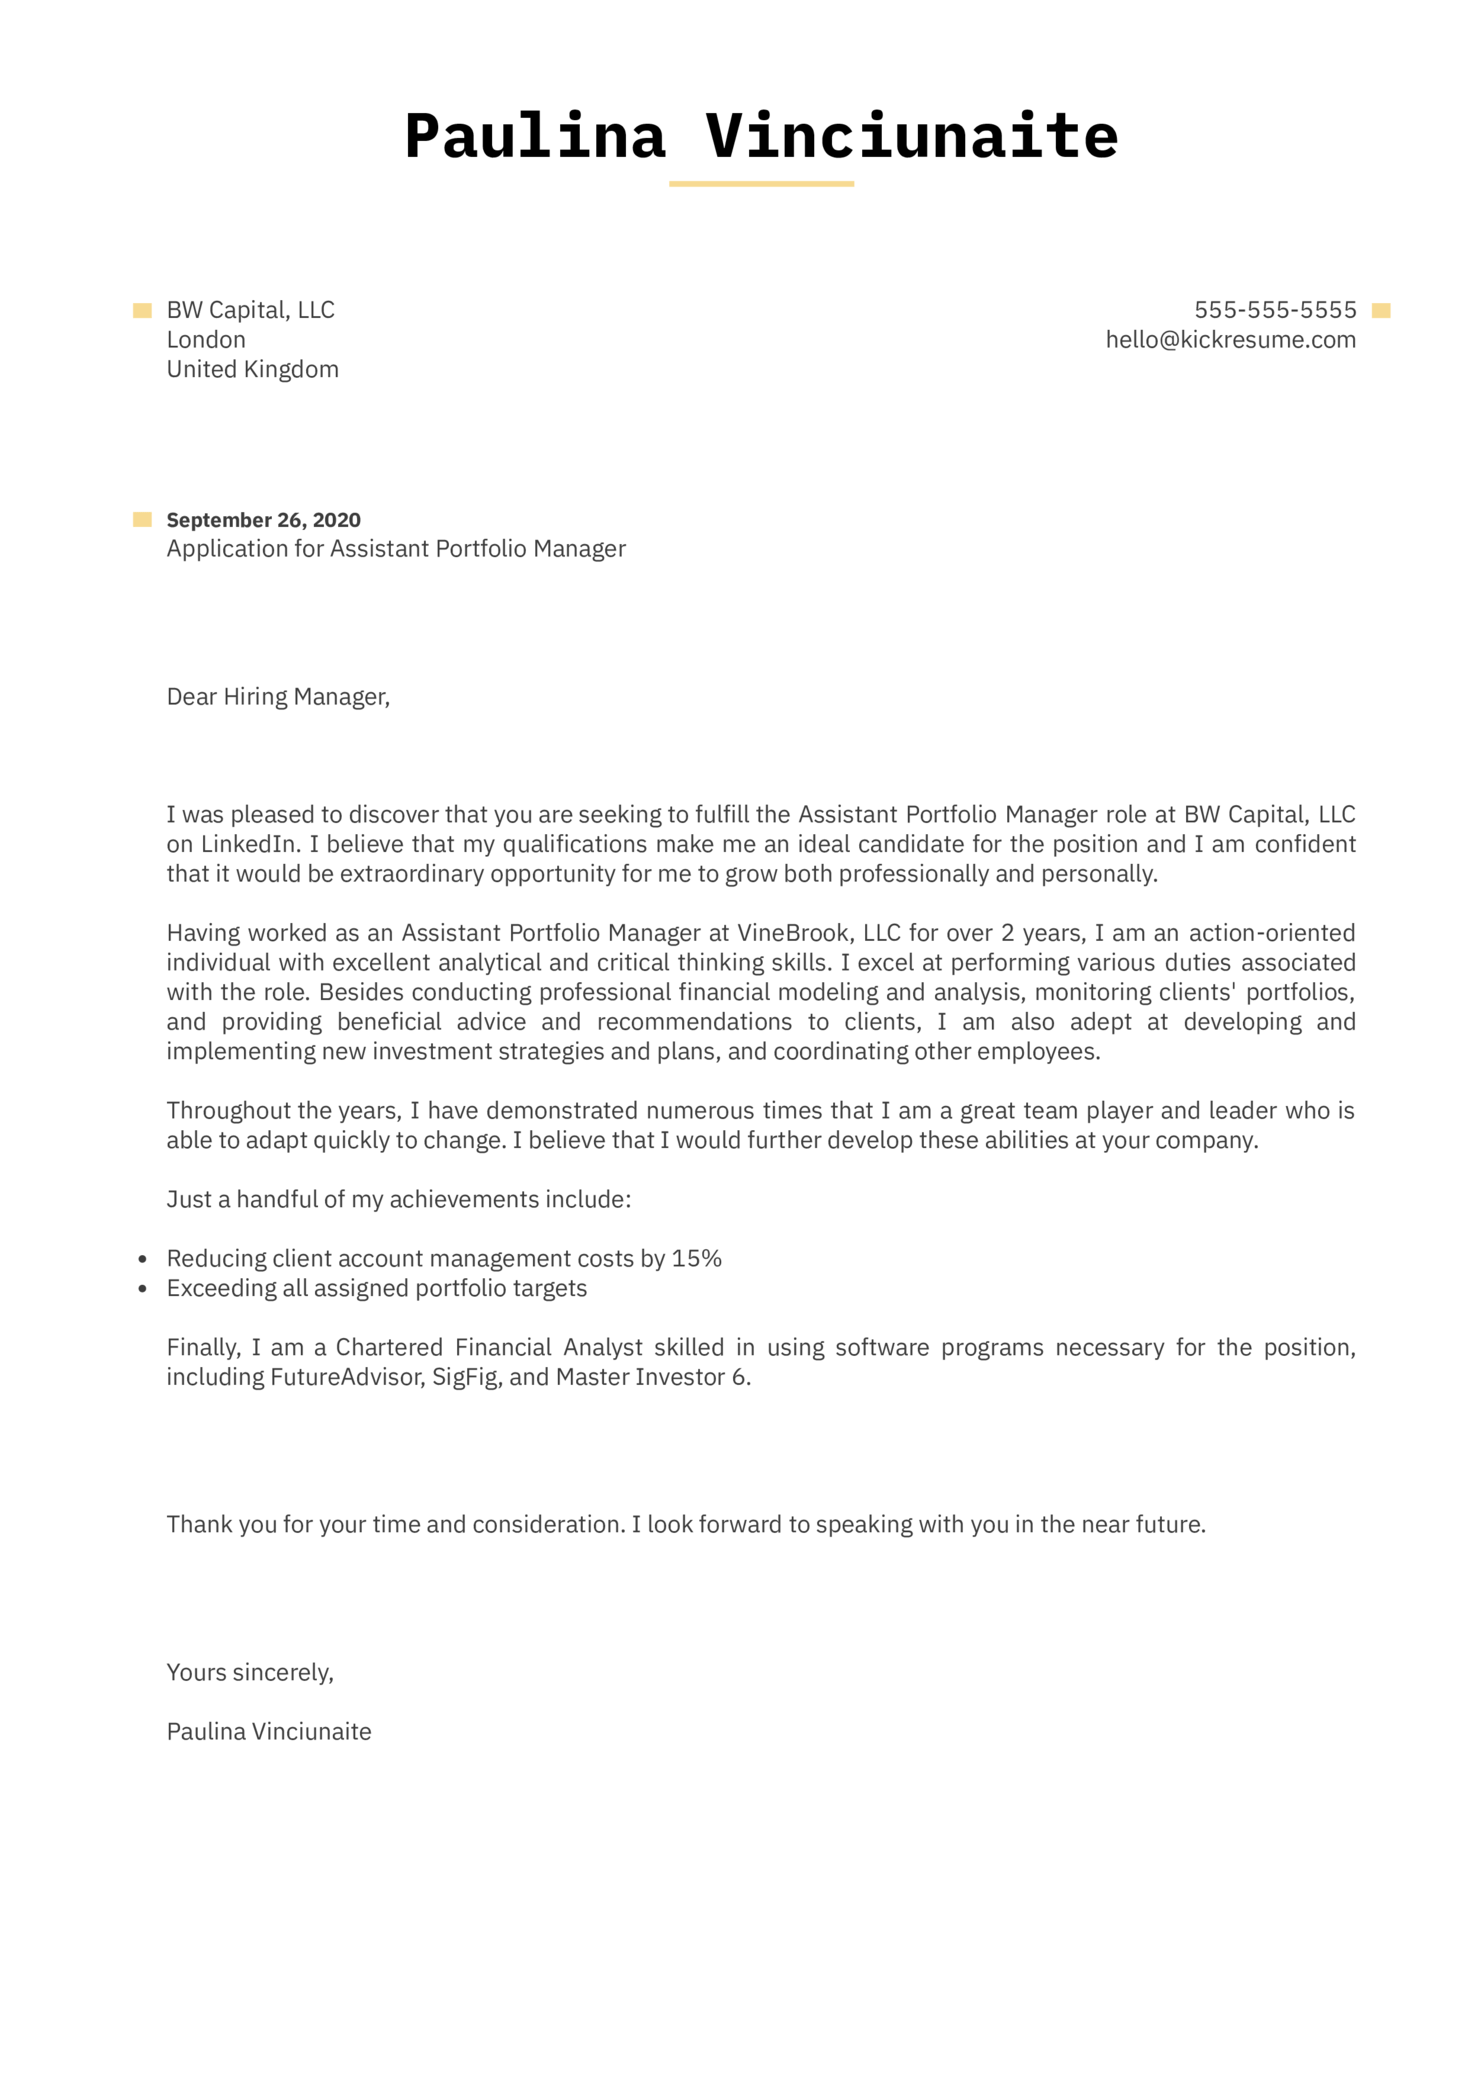 Assistant Portfolio Manager Cover Letter Example